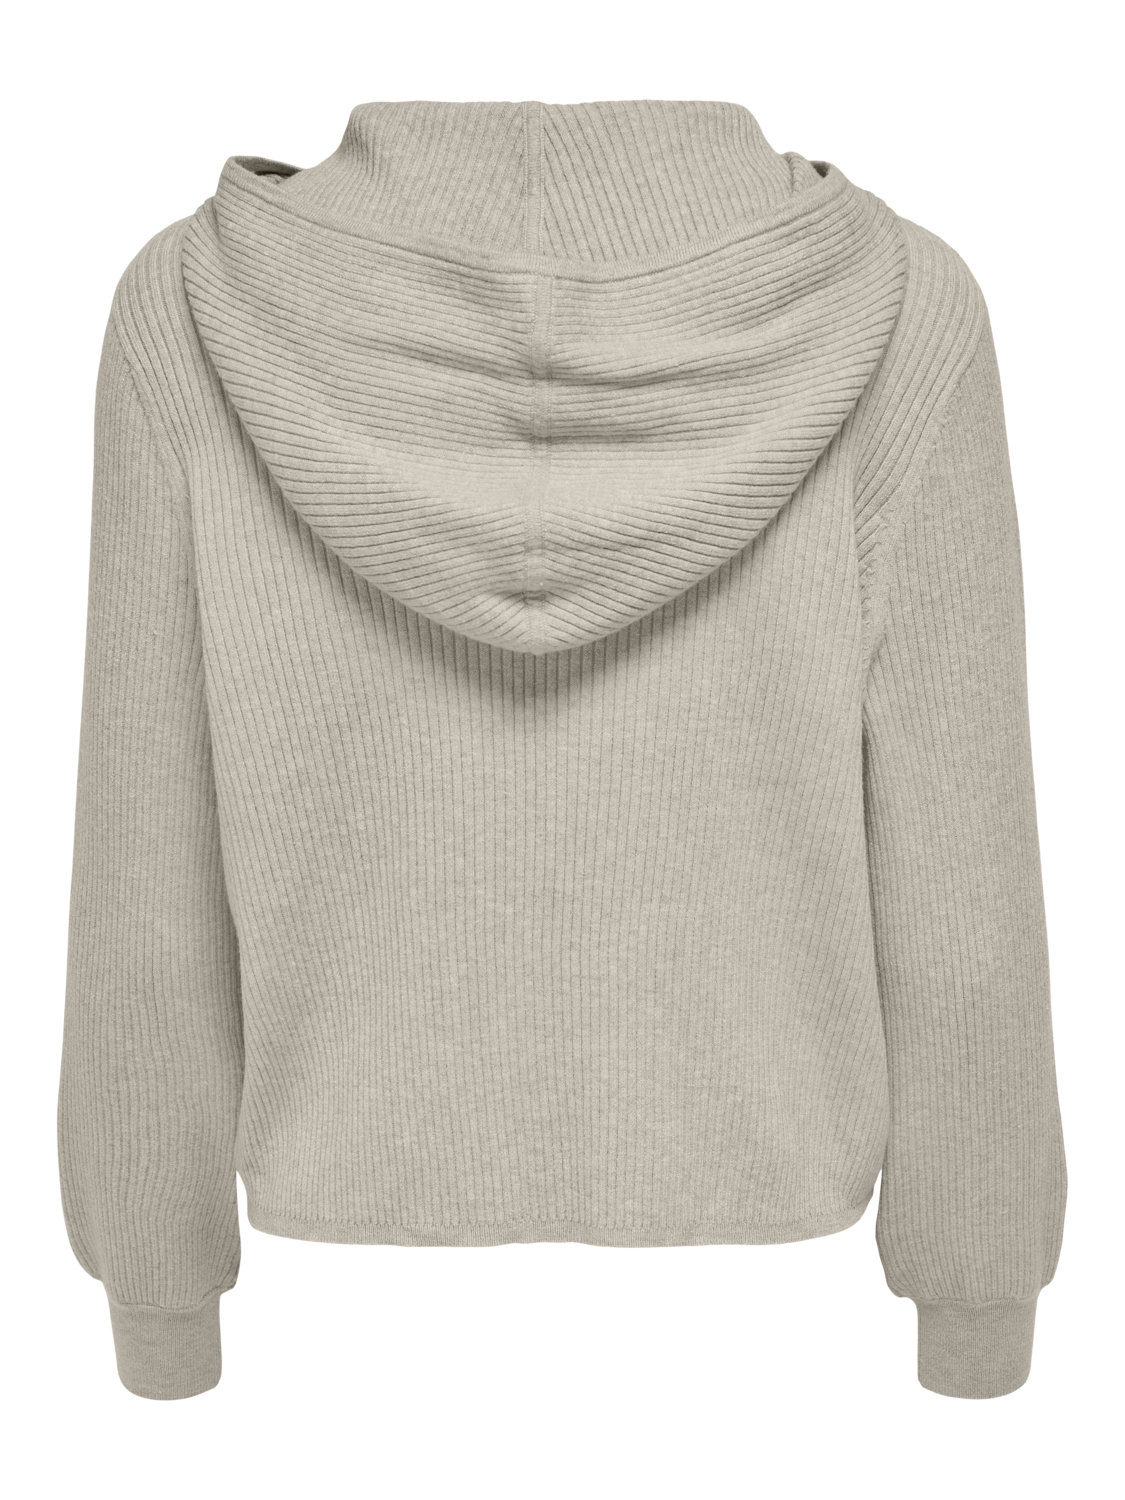 Only Florelle Life strik hoodie, silver lining, small